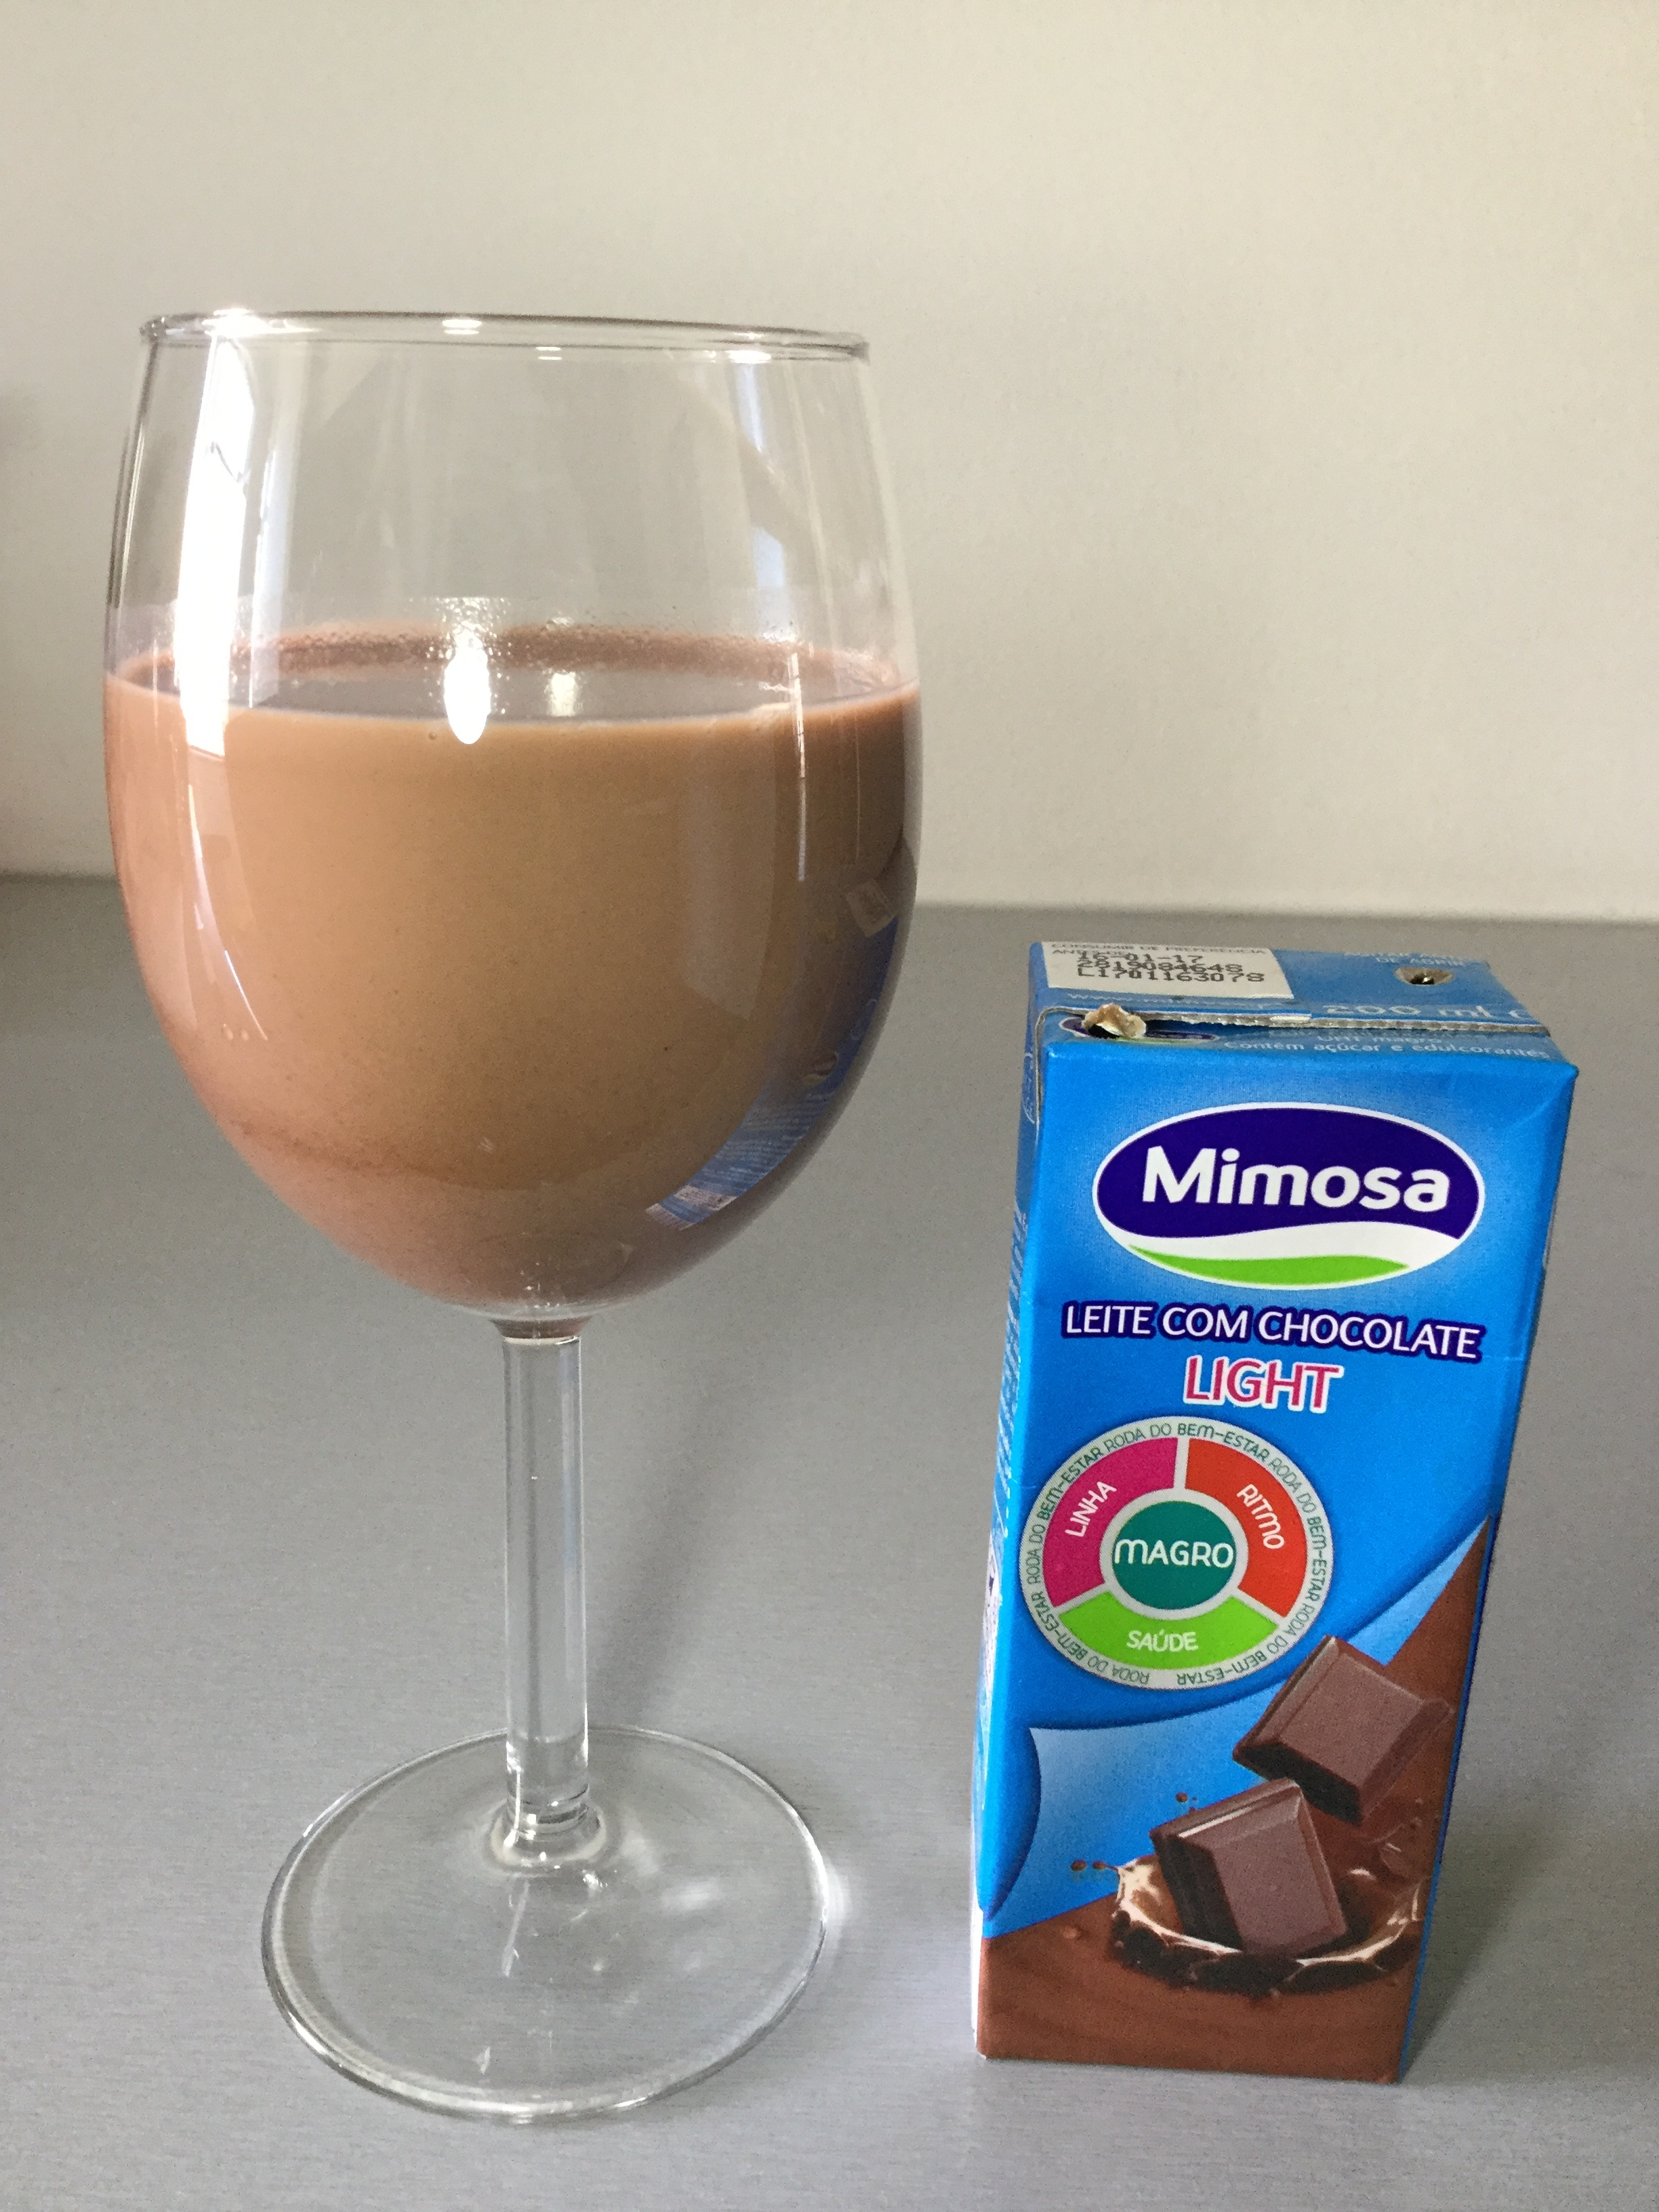 Mimosa Leite Com Chocolate Light Cup